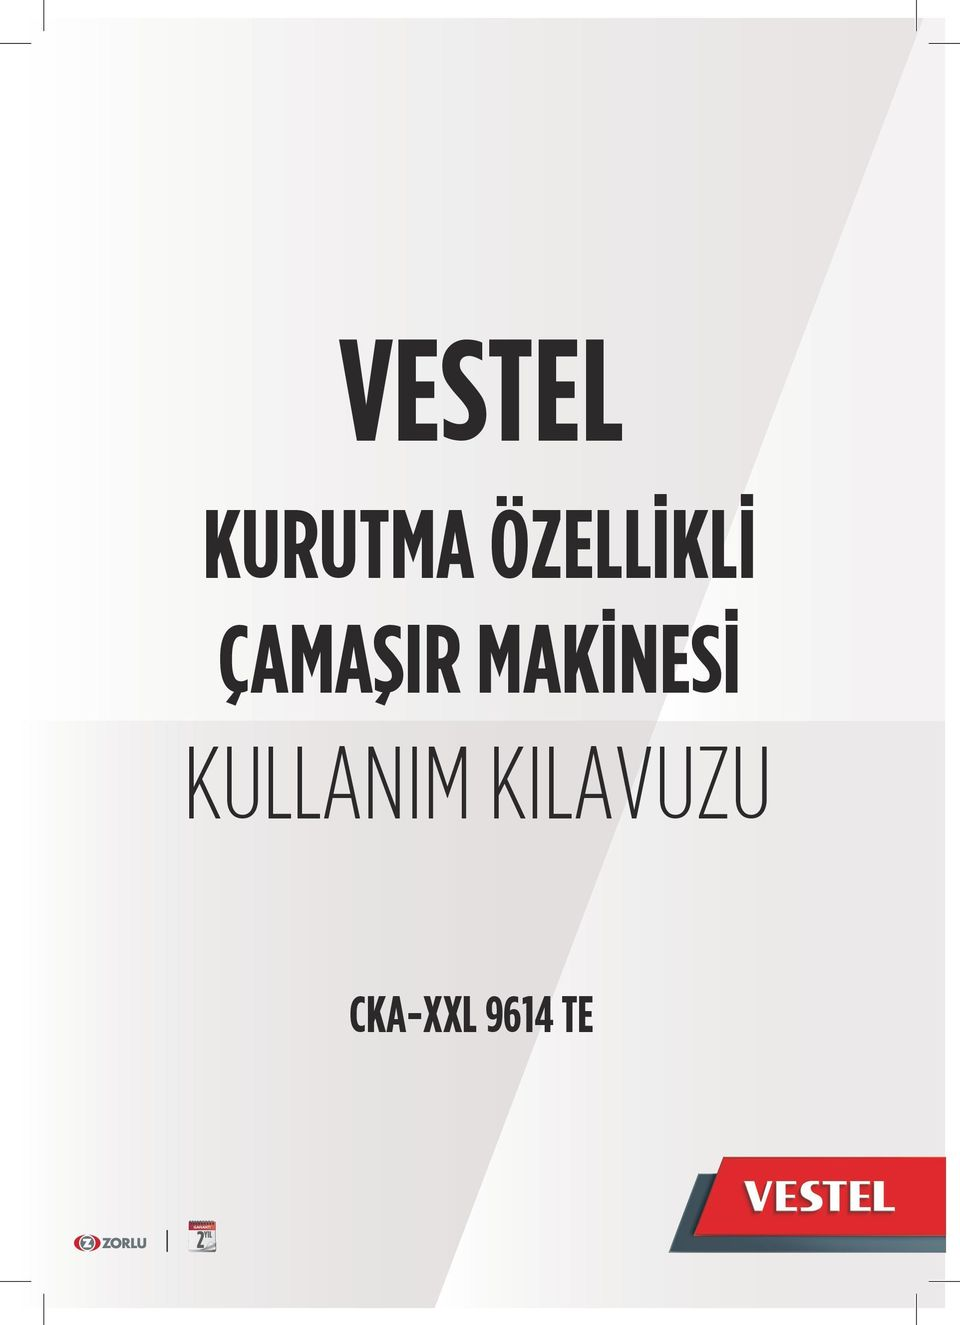 MAKİNESİ KULLANIM